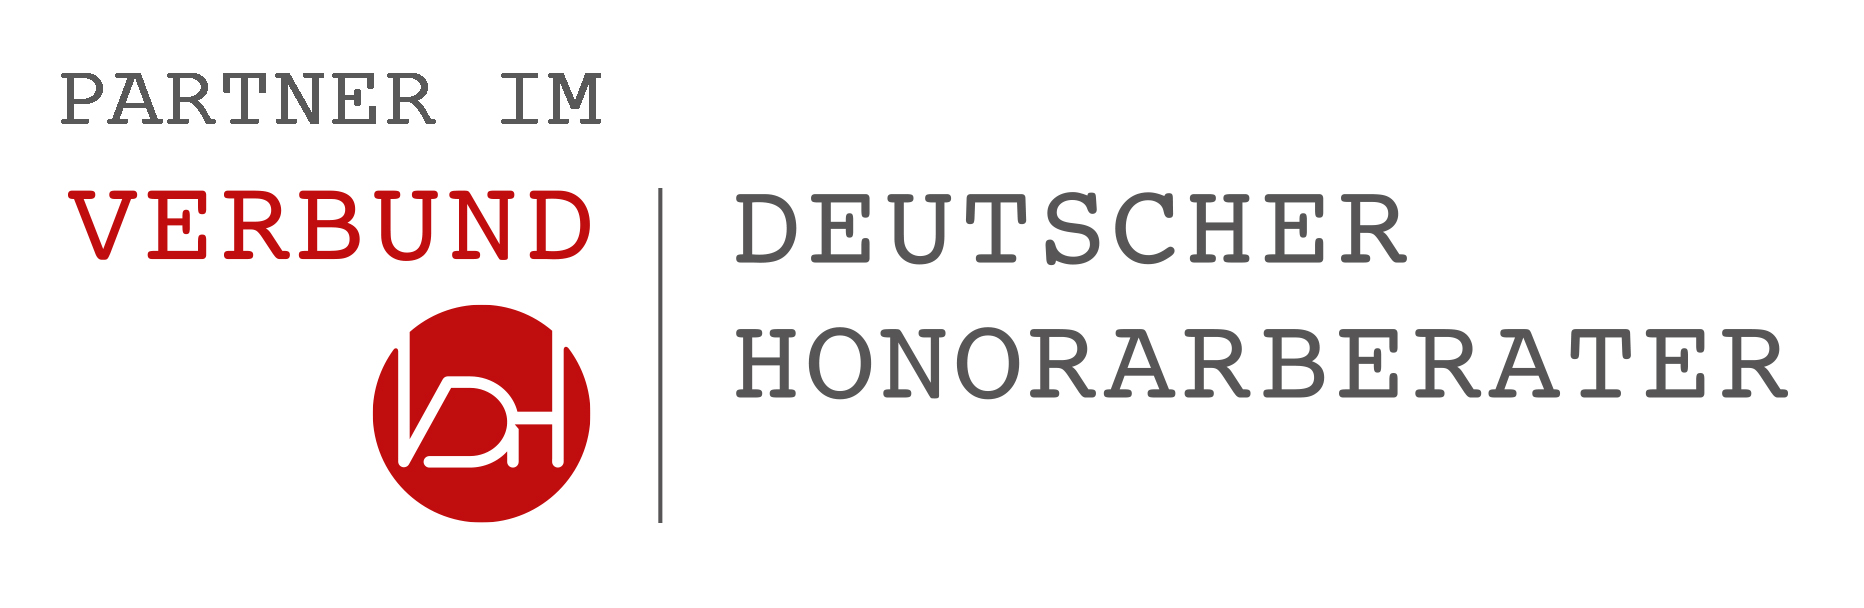 Honorarberatung - maiwerk Partner im Verbund deutscher Honorarberater